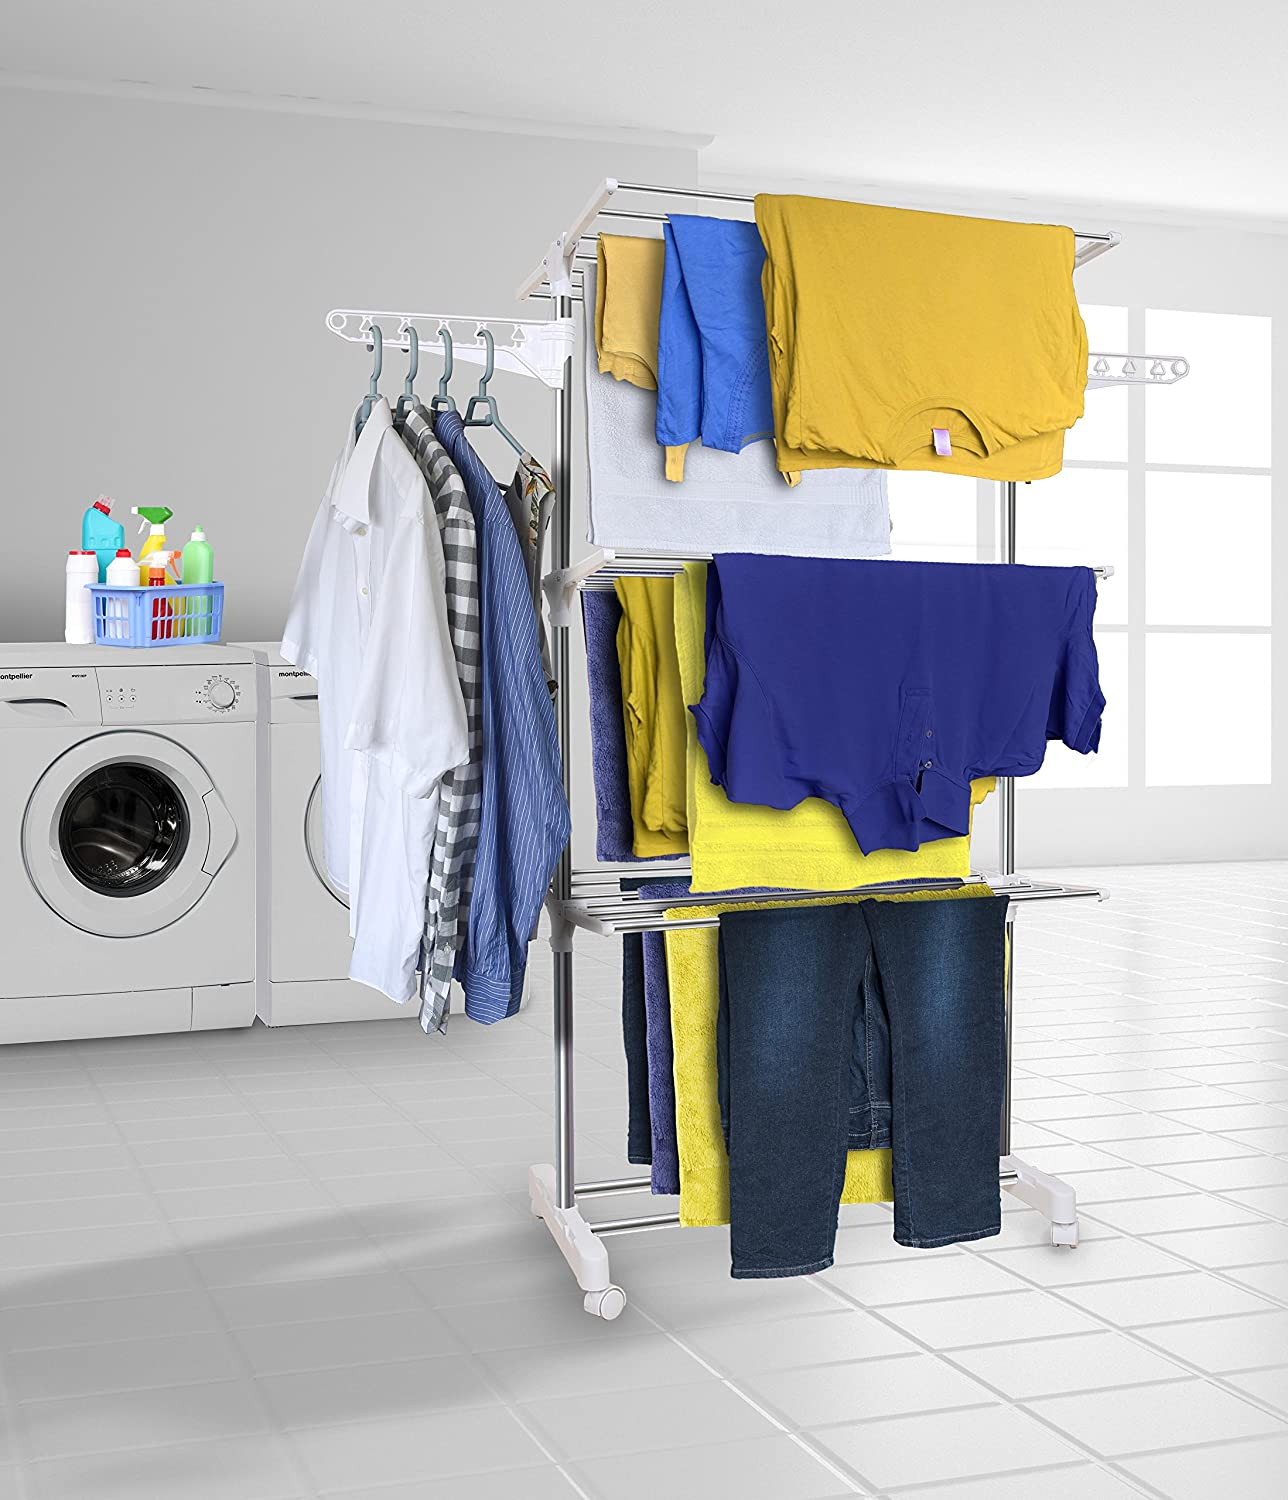 Laundry Room Clothes Hanger Racks